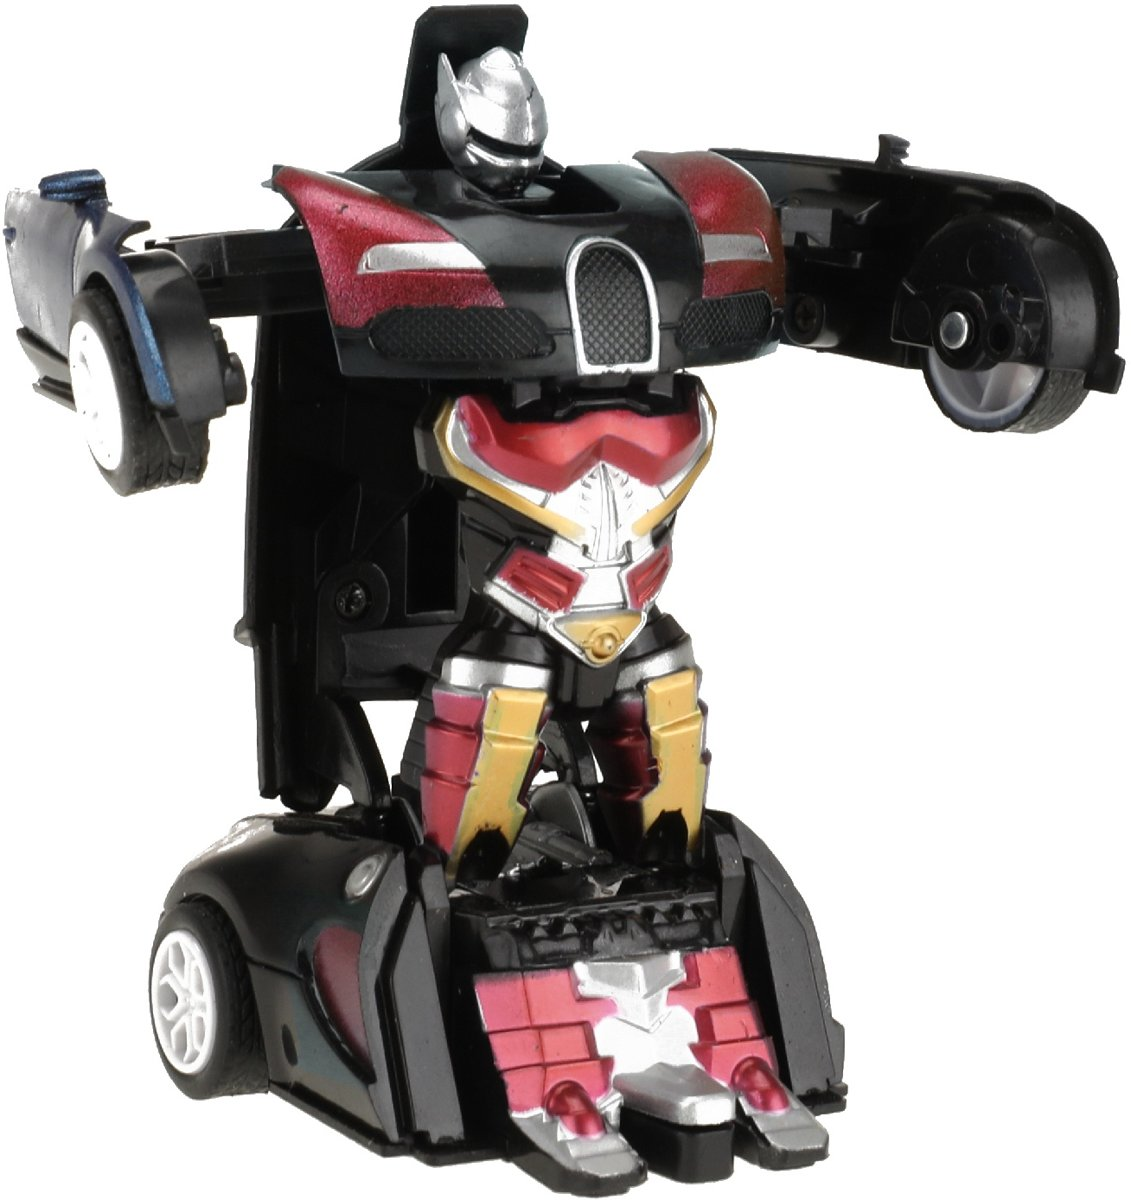 Toi-toys Transformer Robot Rood 14 Cm